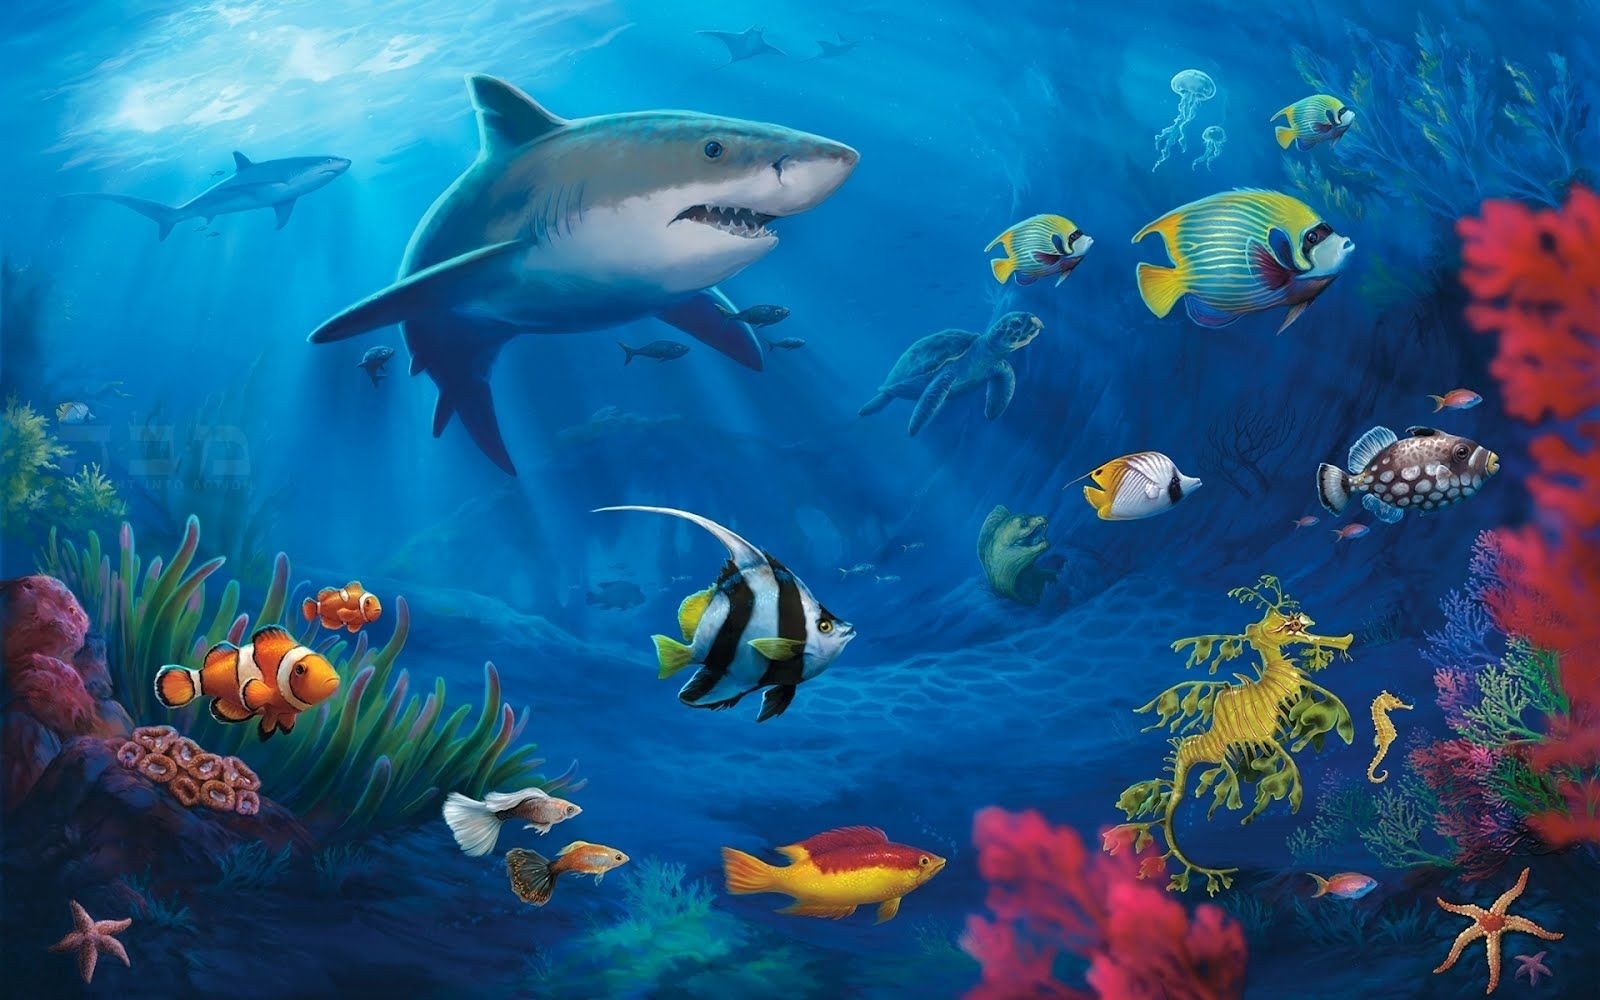 Download Every Iphone Live Wallpaper Live Fish Iphone: ... Live . Download This